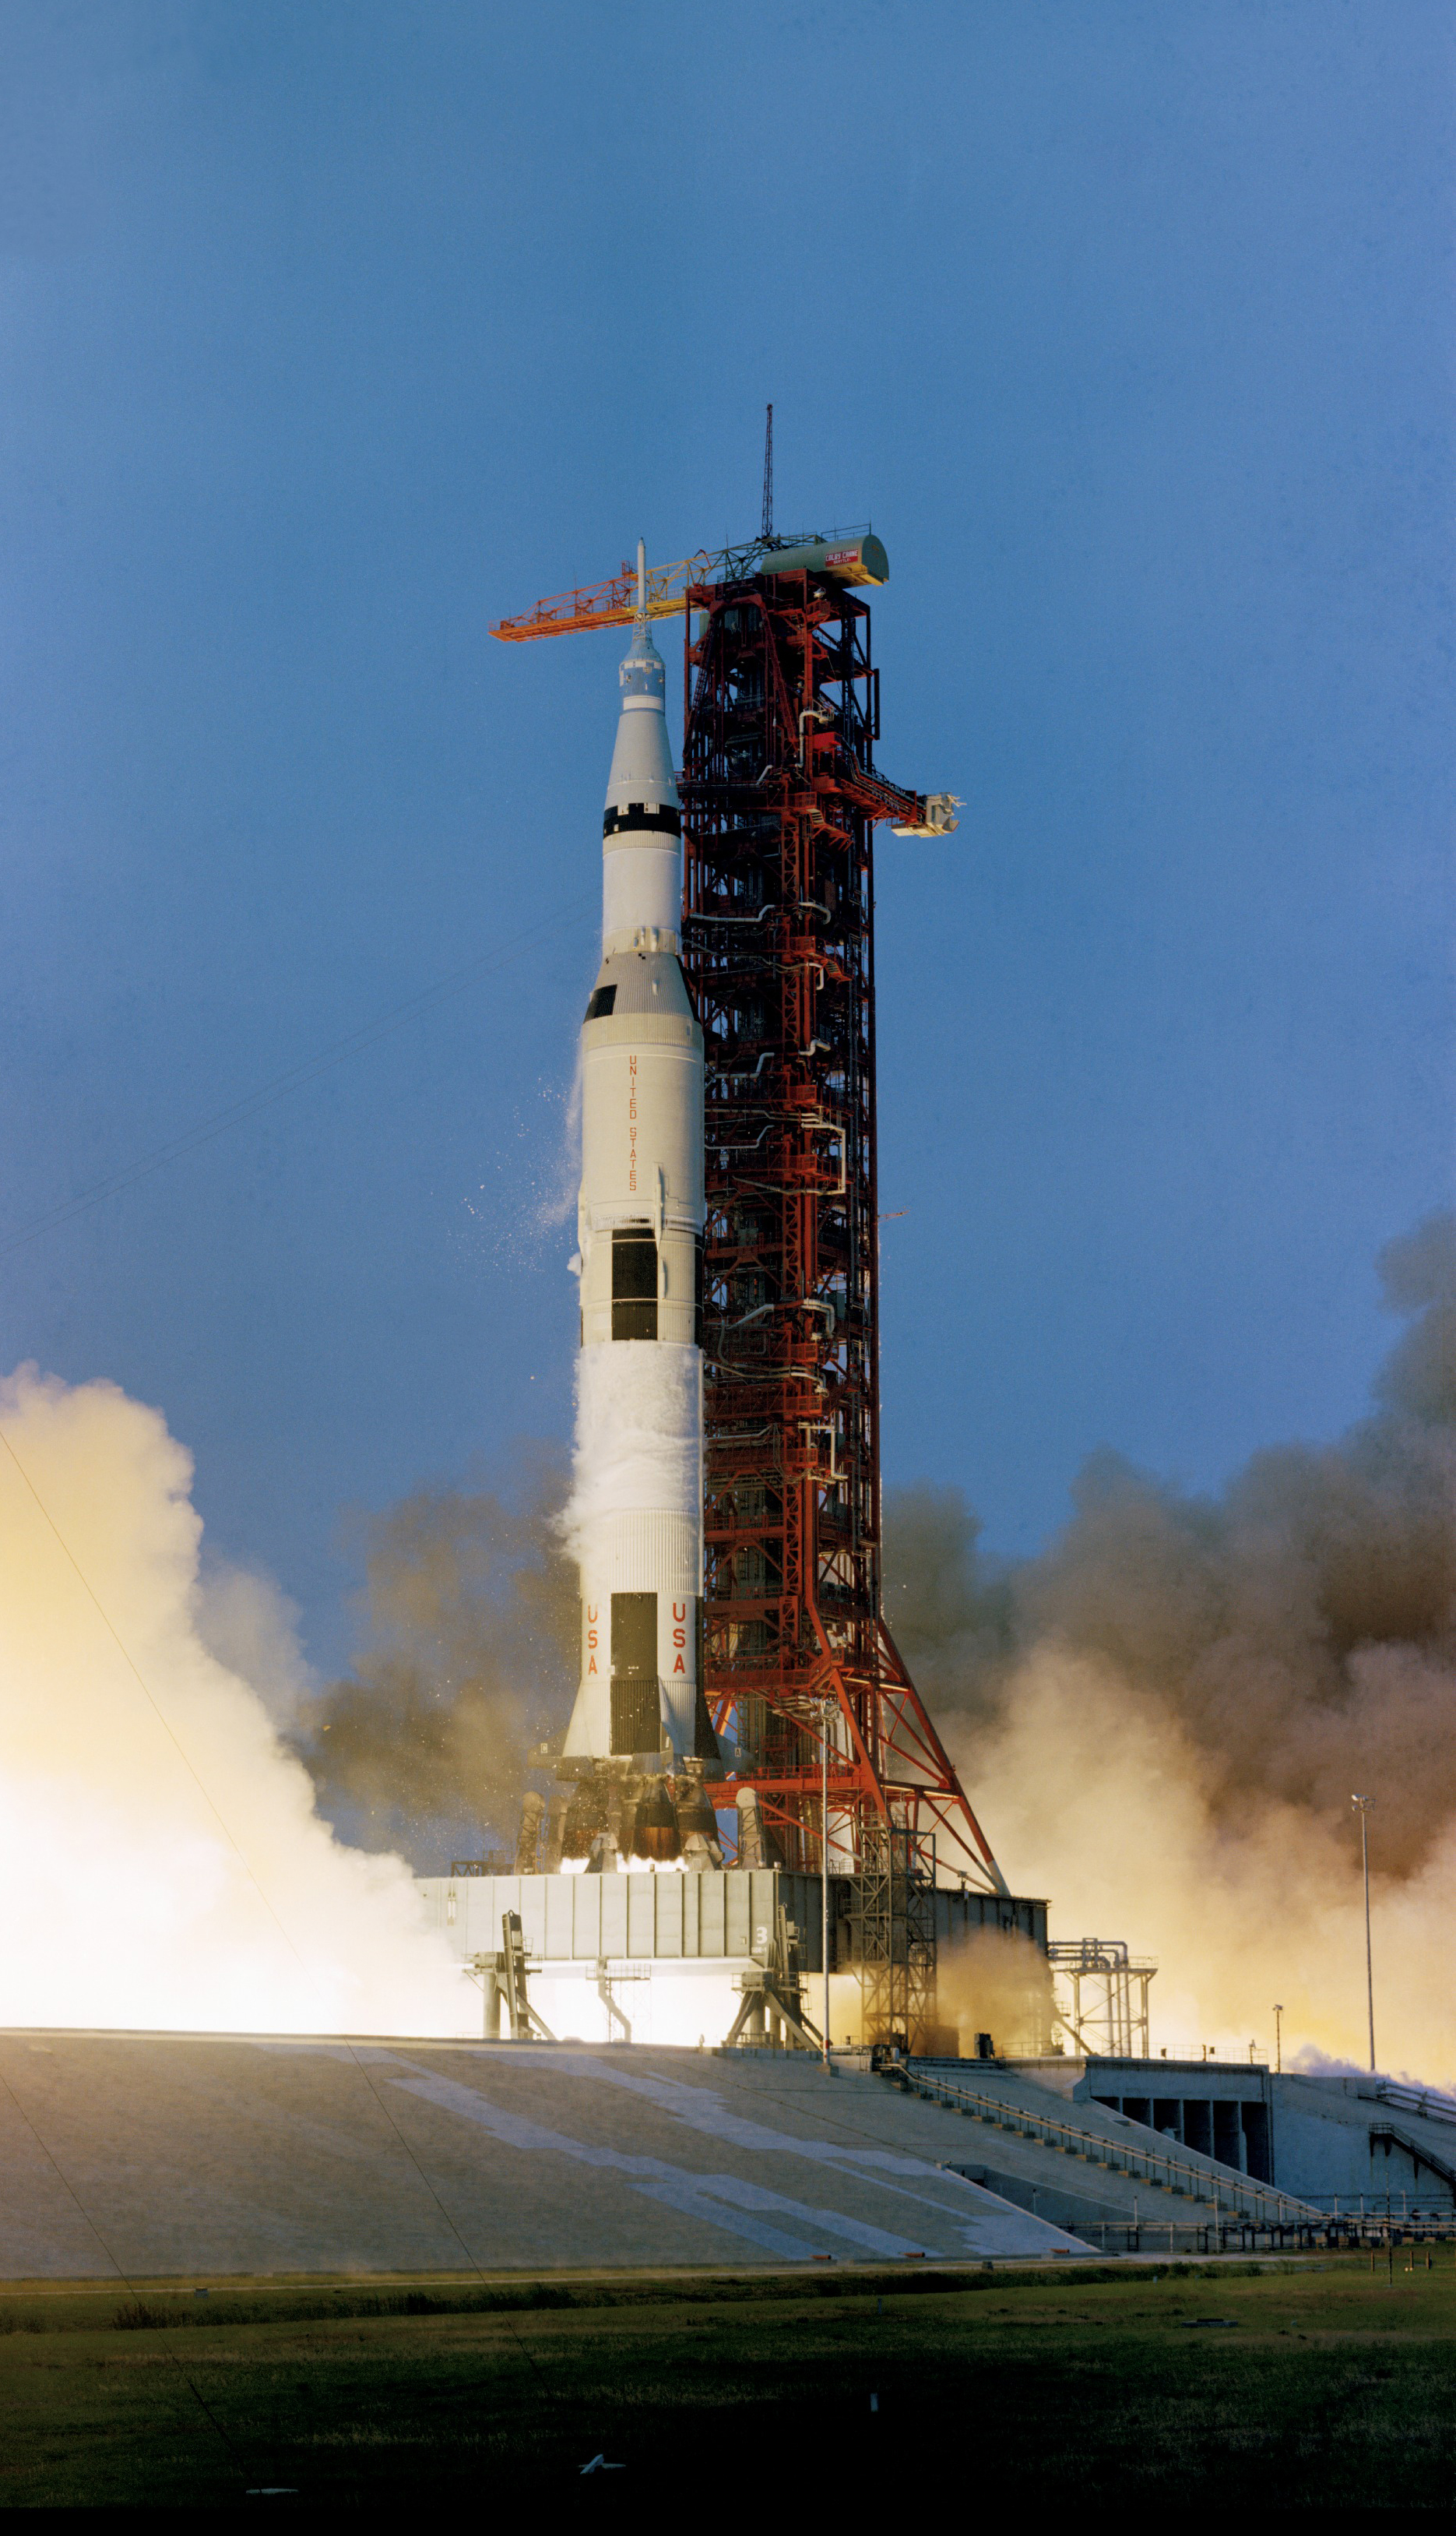 Image Galleries For Lionaid Campaigns: Apollo 13 Launch